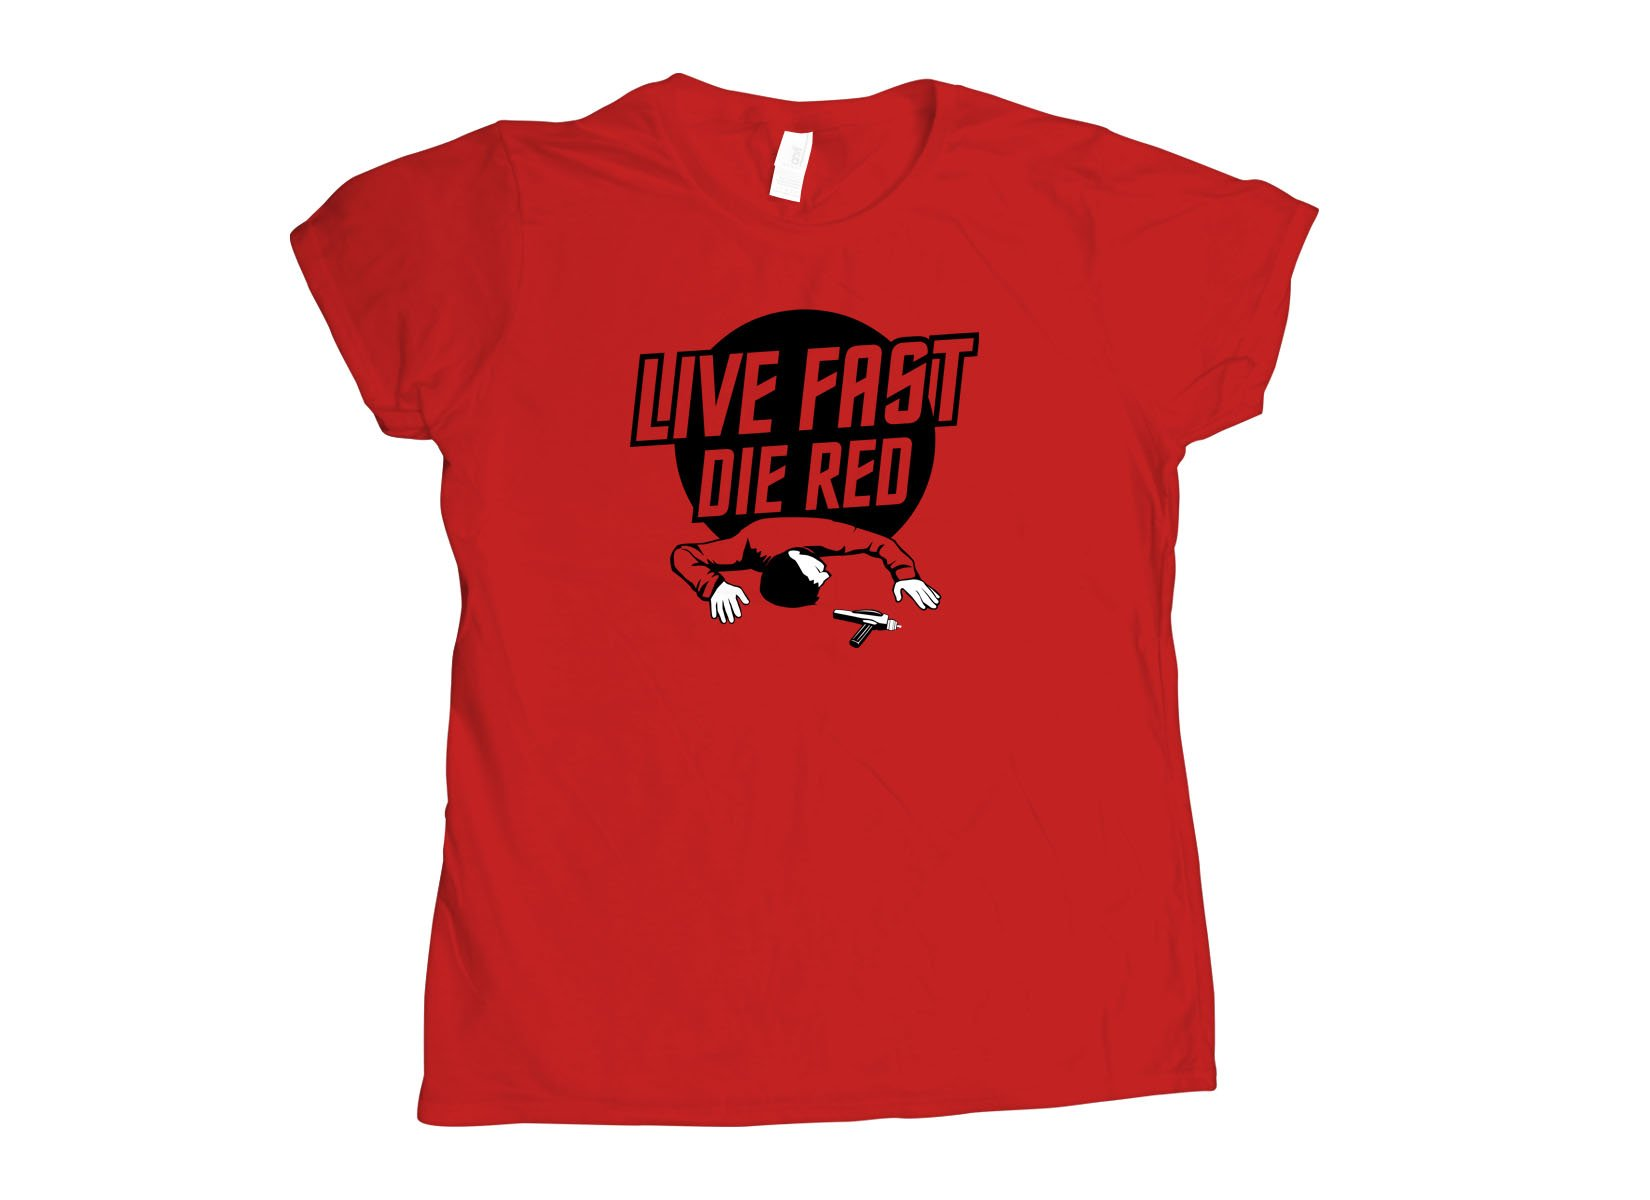 Live Fast Die Red on Womens T-Shirt